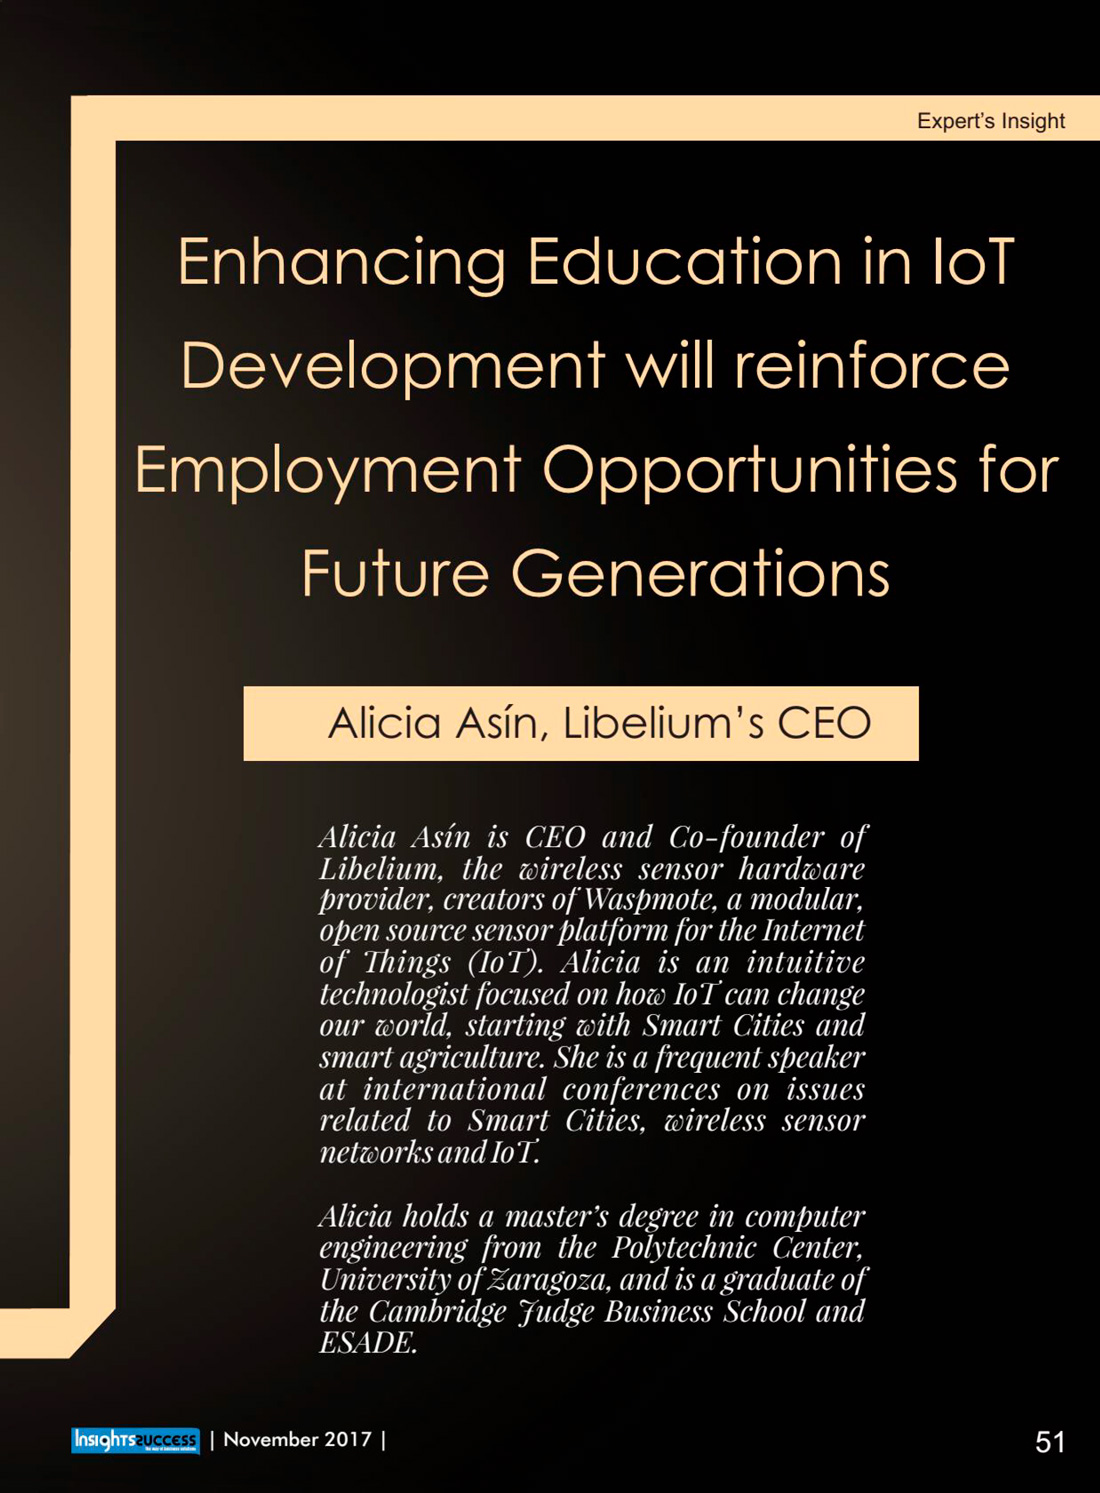 Insights Success – Enhancing Education in IoT Development will Reinforce Employment Opportunigies for Future Generations